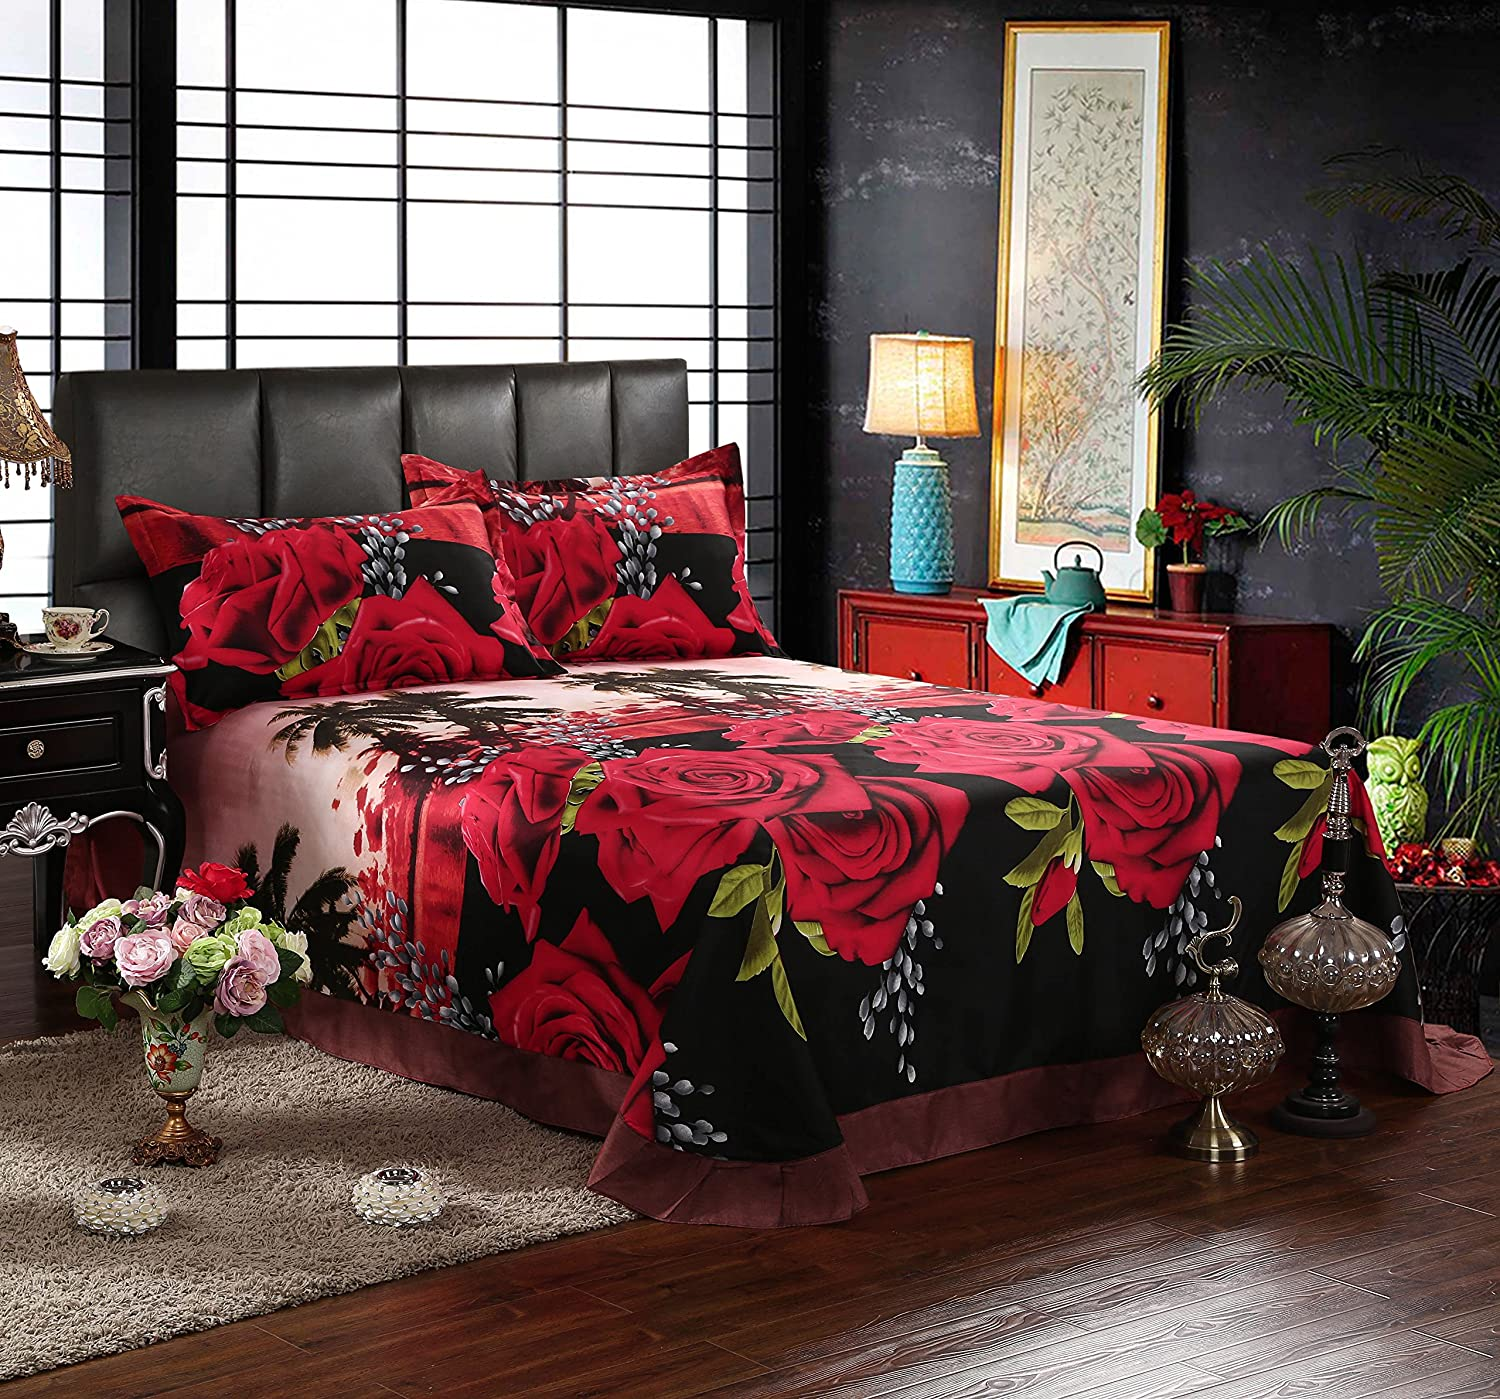 Red and black bedding - Amazon Com Queen Size 3d Bedding Sets 100 Cotton Red Rose Black Print 4 Piece Duvet Cover Bedding Sets Include 1 Duvet Cover 1 Bed Sheet 2 Pillow Case